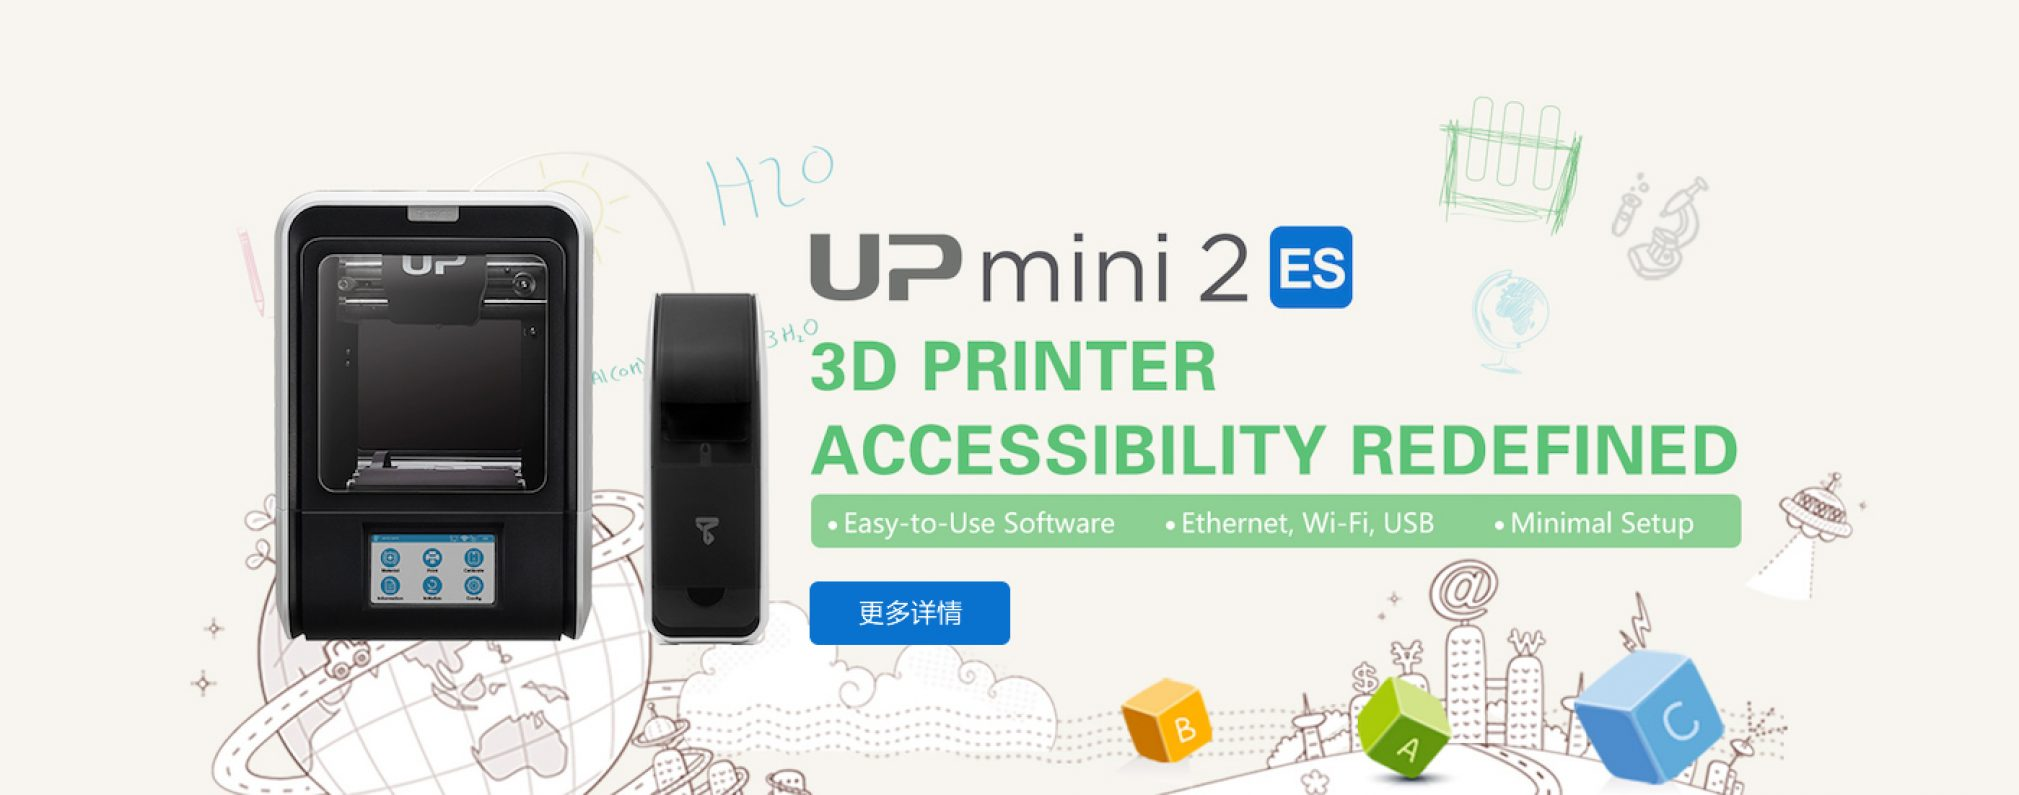 Slider_1_UP_mini_2_ES